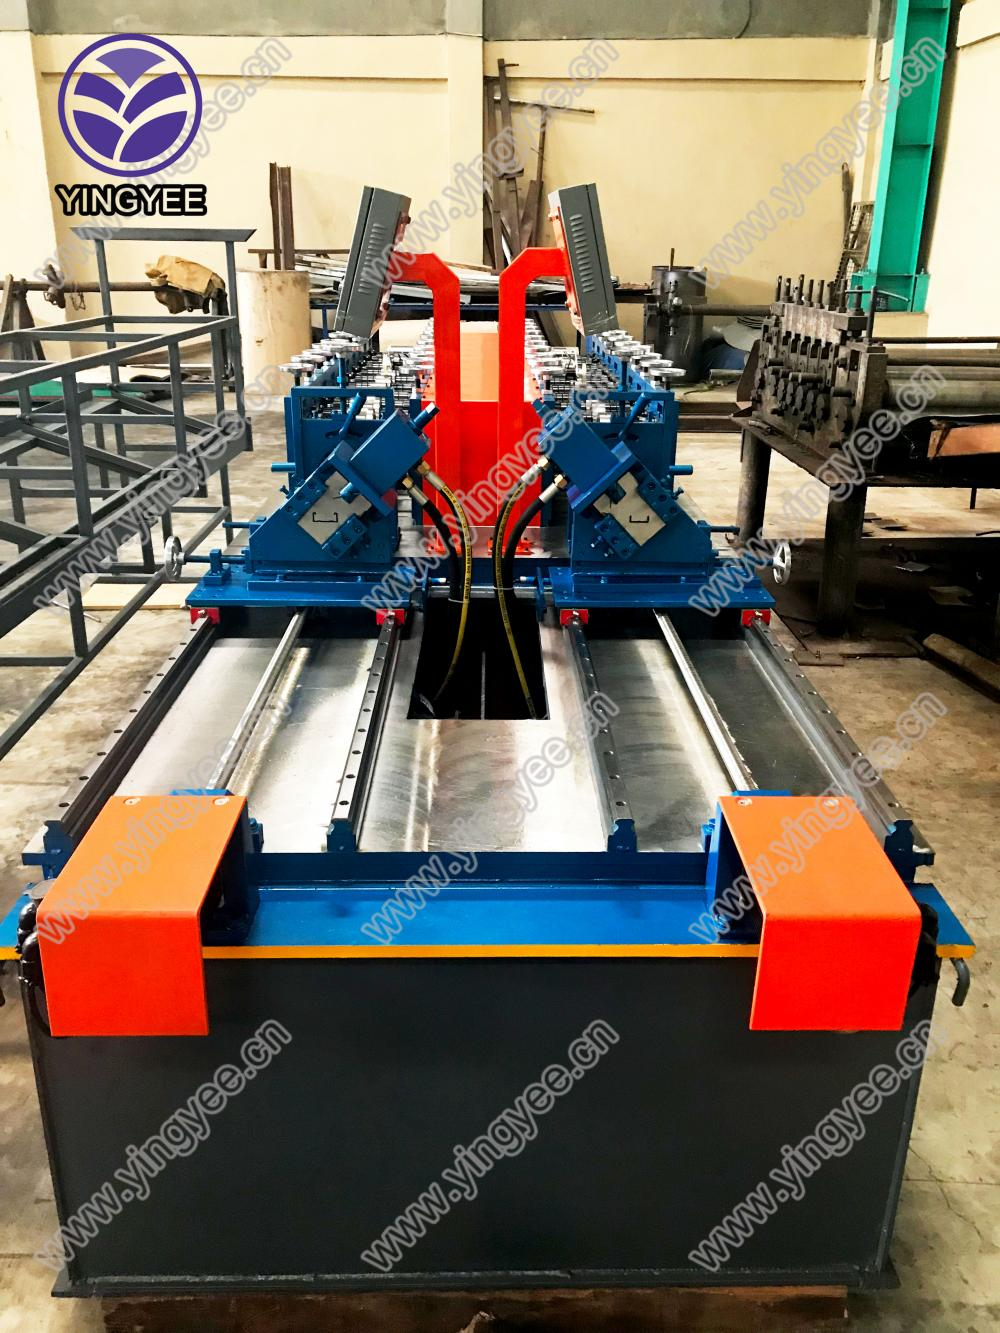 Double Out Machine From Yingyee010